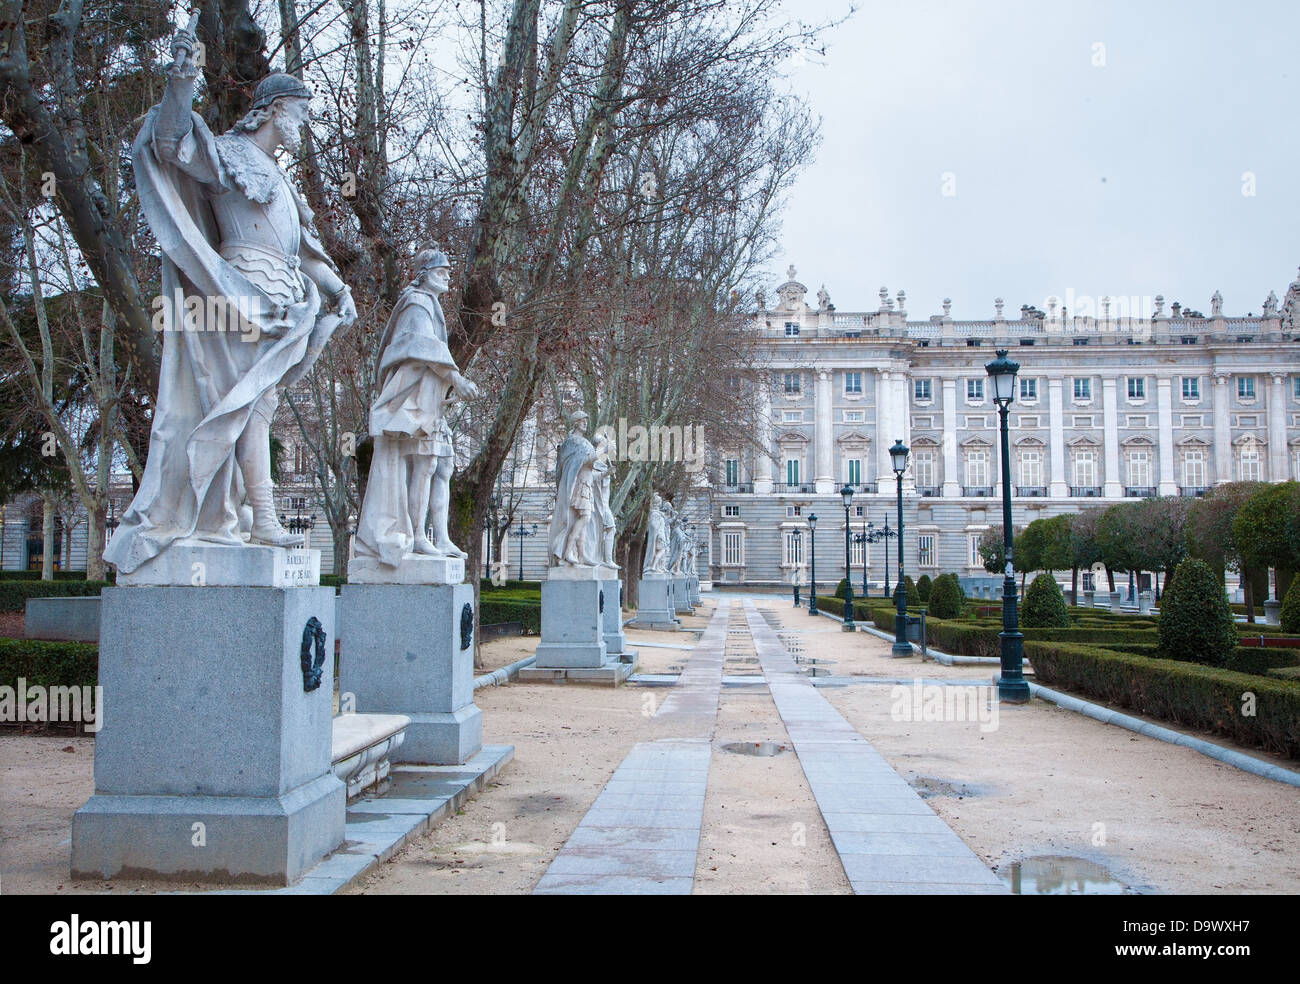 Madrid - The statues (19. cent.) depict Roman, Visigoth and Christian rulers from Plaza de Oriente in morning - Stock Image